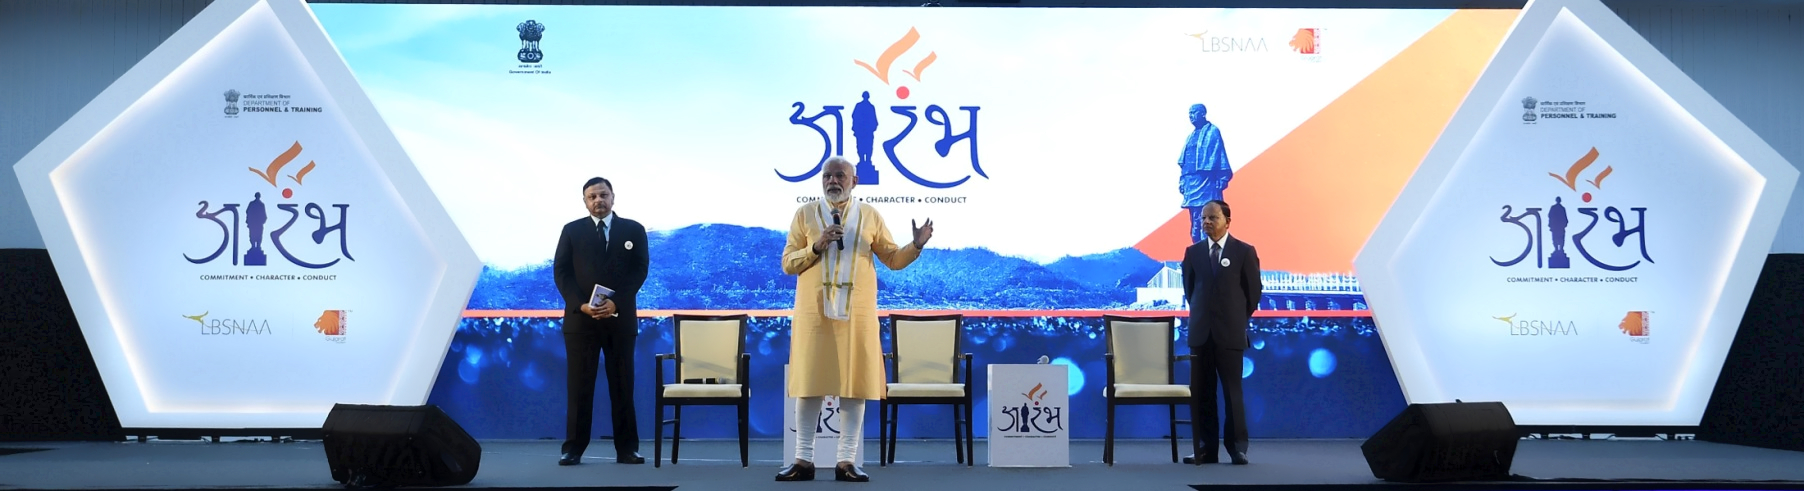 The Prime Minister, Shri Narendra Modi interacting with the Officer Trainees of the 94th Civil Services Foundation Course, at Aarambh Conference, in Kevadia Gujarat